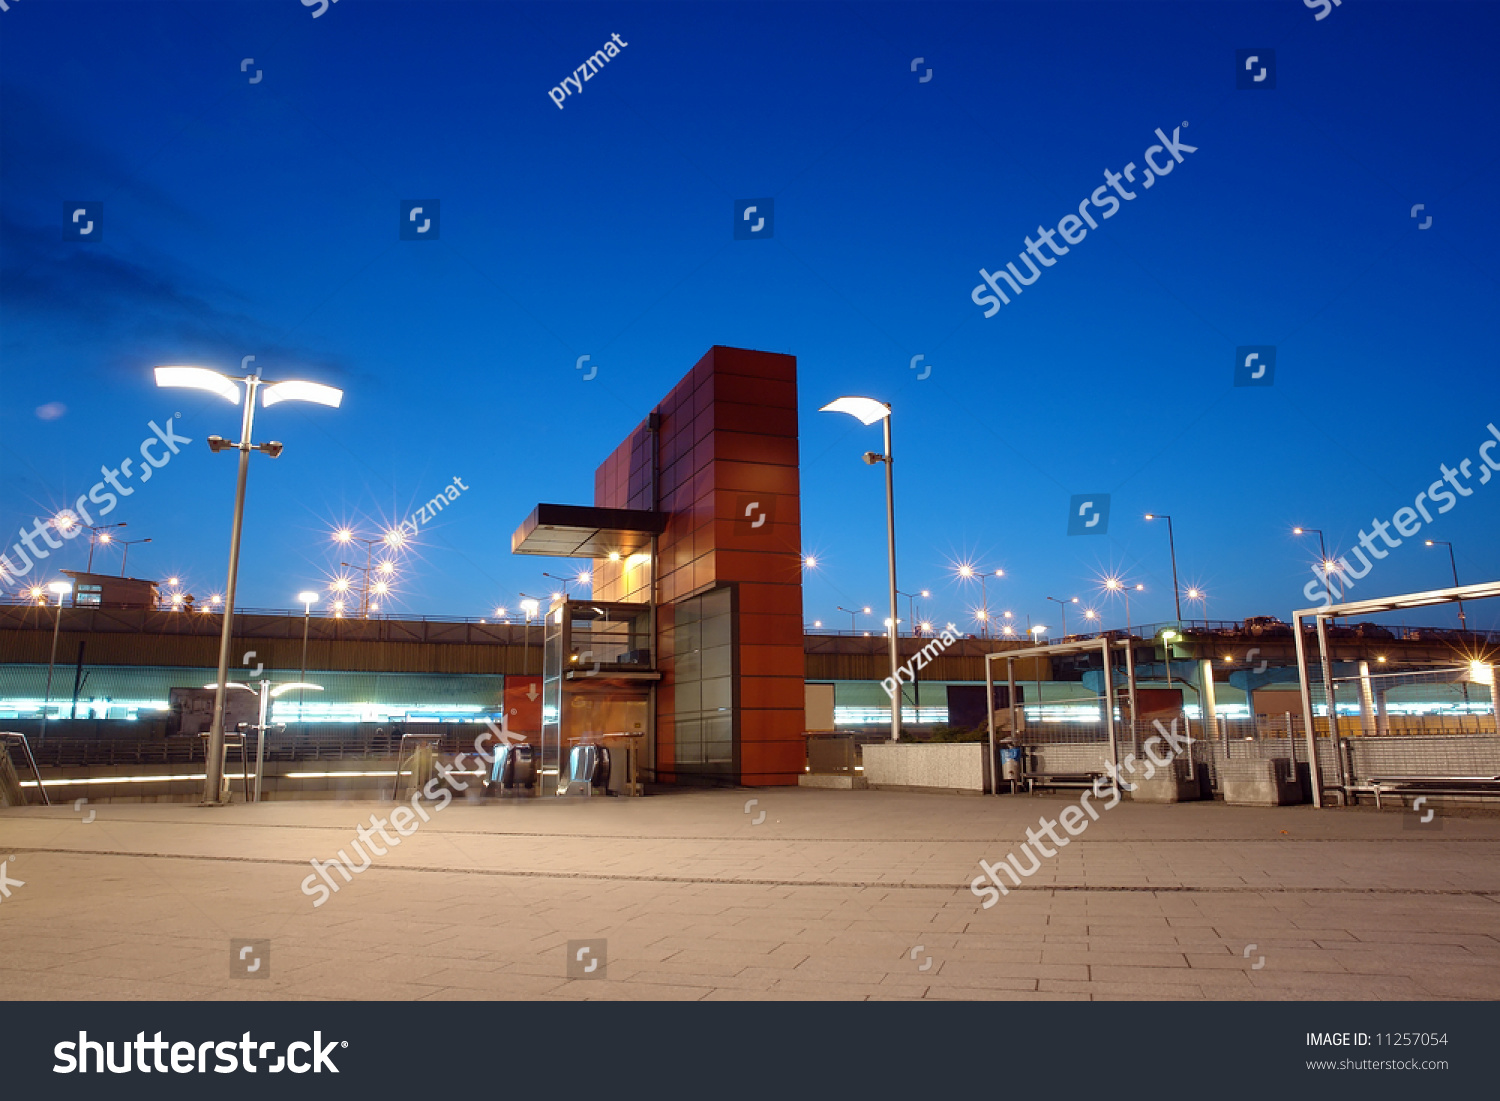 stock_photo_entrance_to_the_main_railway_station_in_krakow_poland_night_time_11257054.jpg